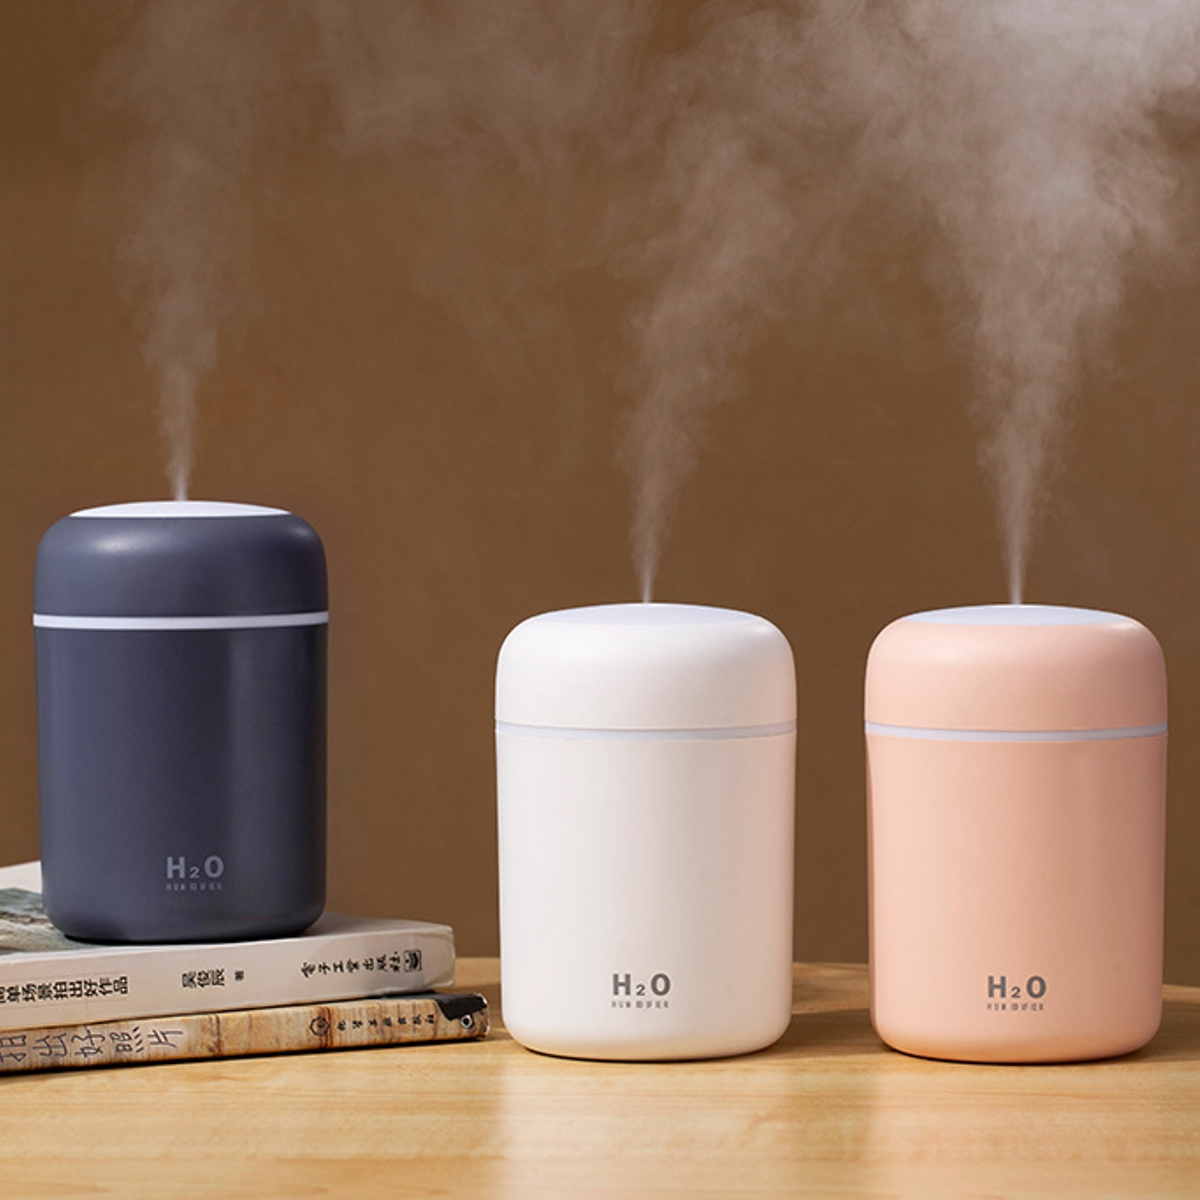 300ml Ultrasonic Electric Air Aroma Diffuser Humidifier 2 Modes LED Night Light for Home Office